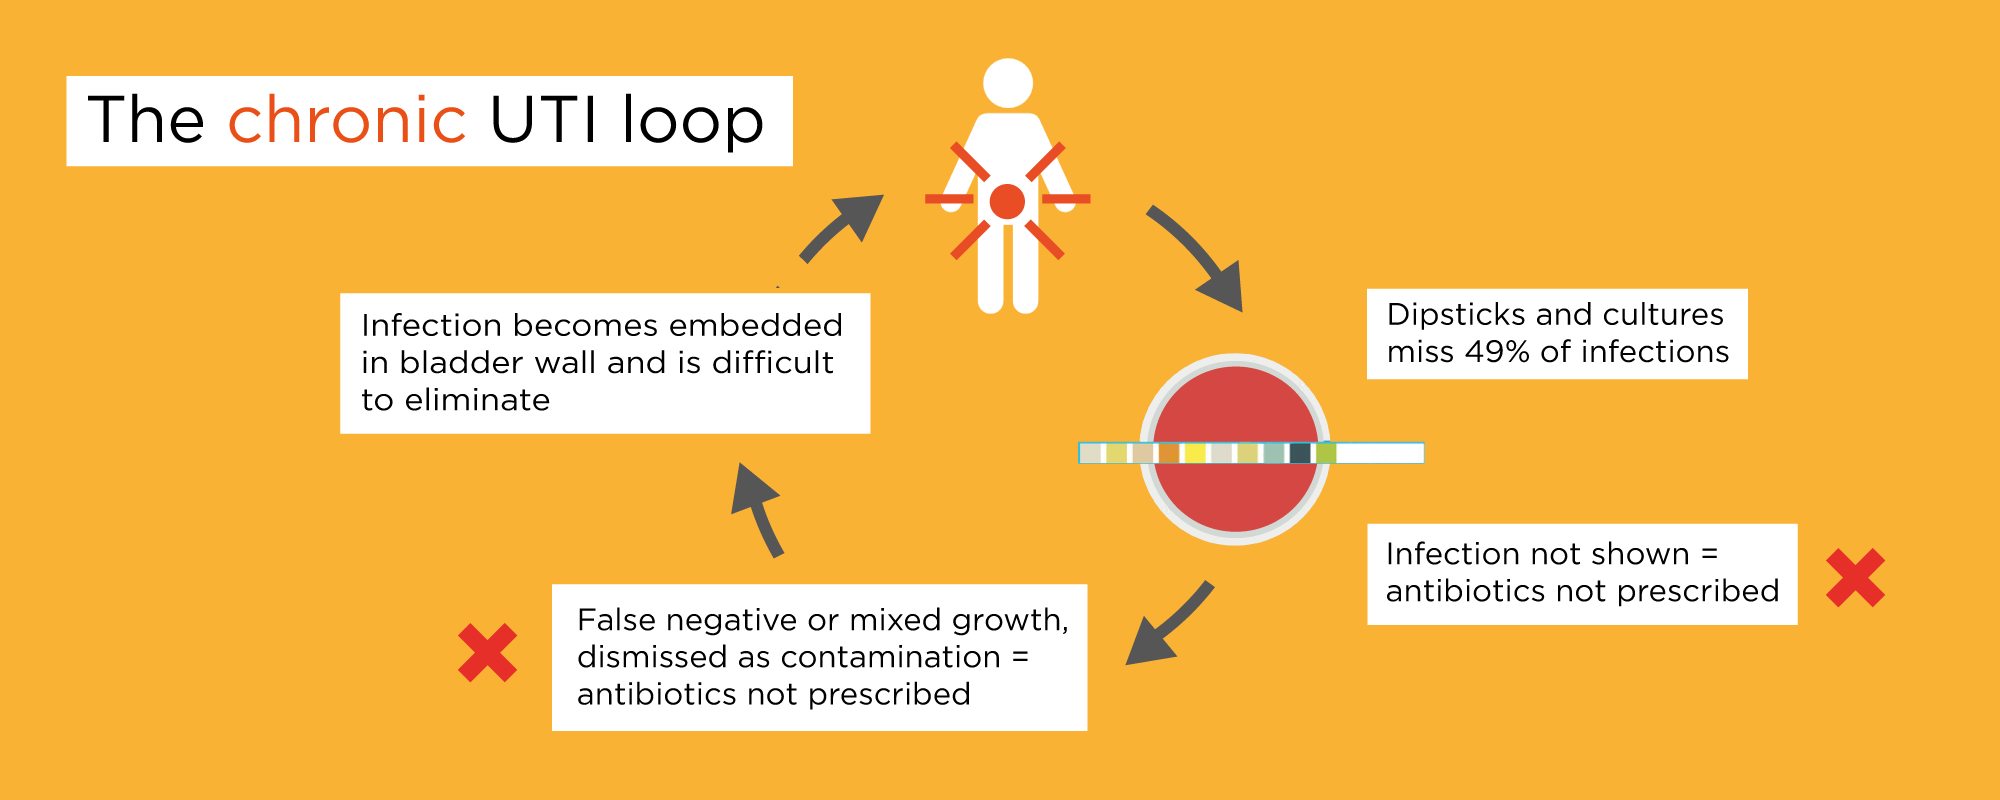 Diagram of chronic UTI loop. Infection missed by tests, antibiotics not prescribed, infection becomes embedded